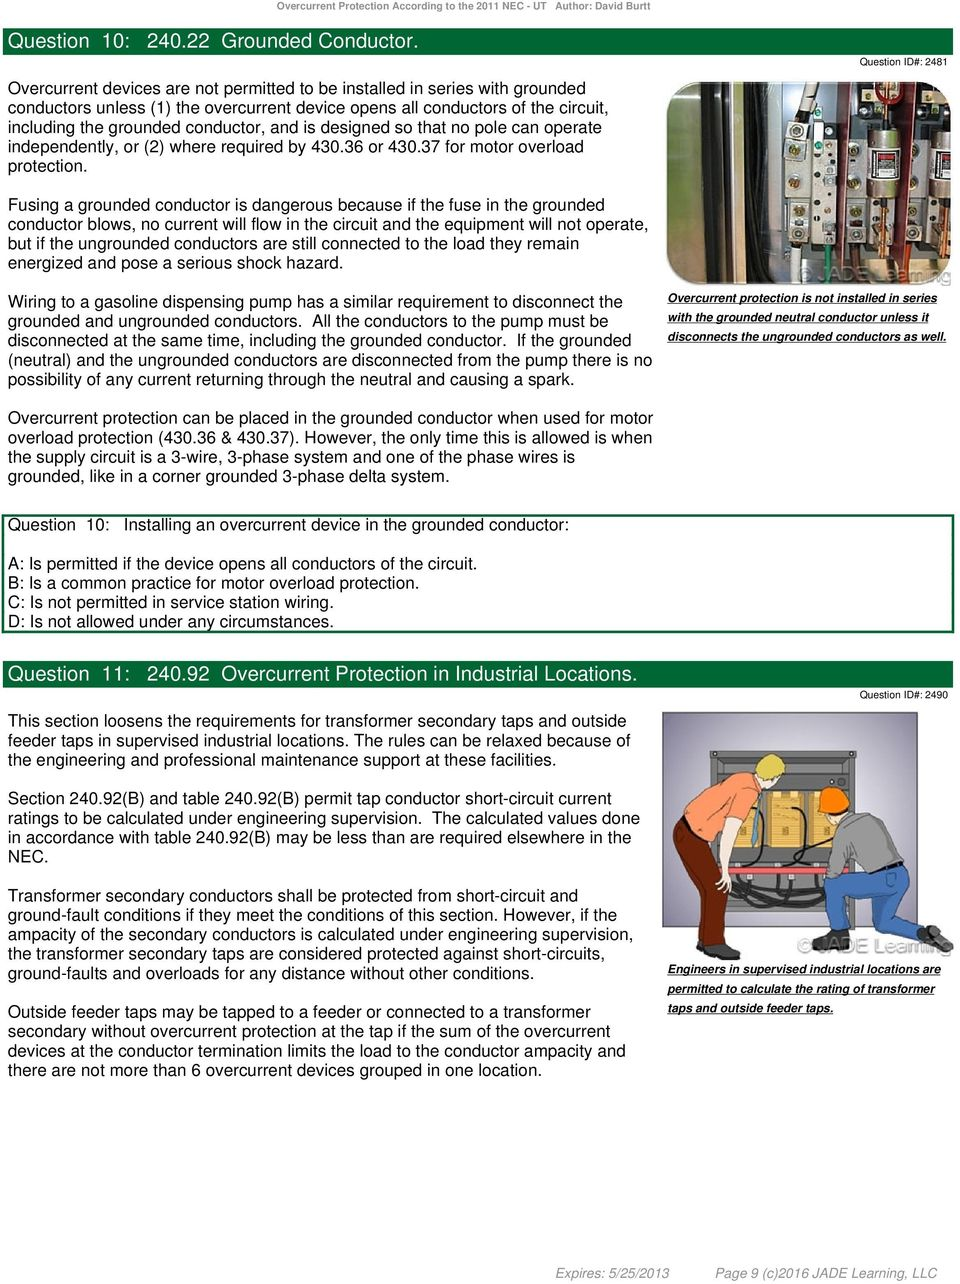 Overcurrent Protection According to the 2011 NEC - PDF